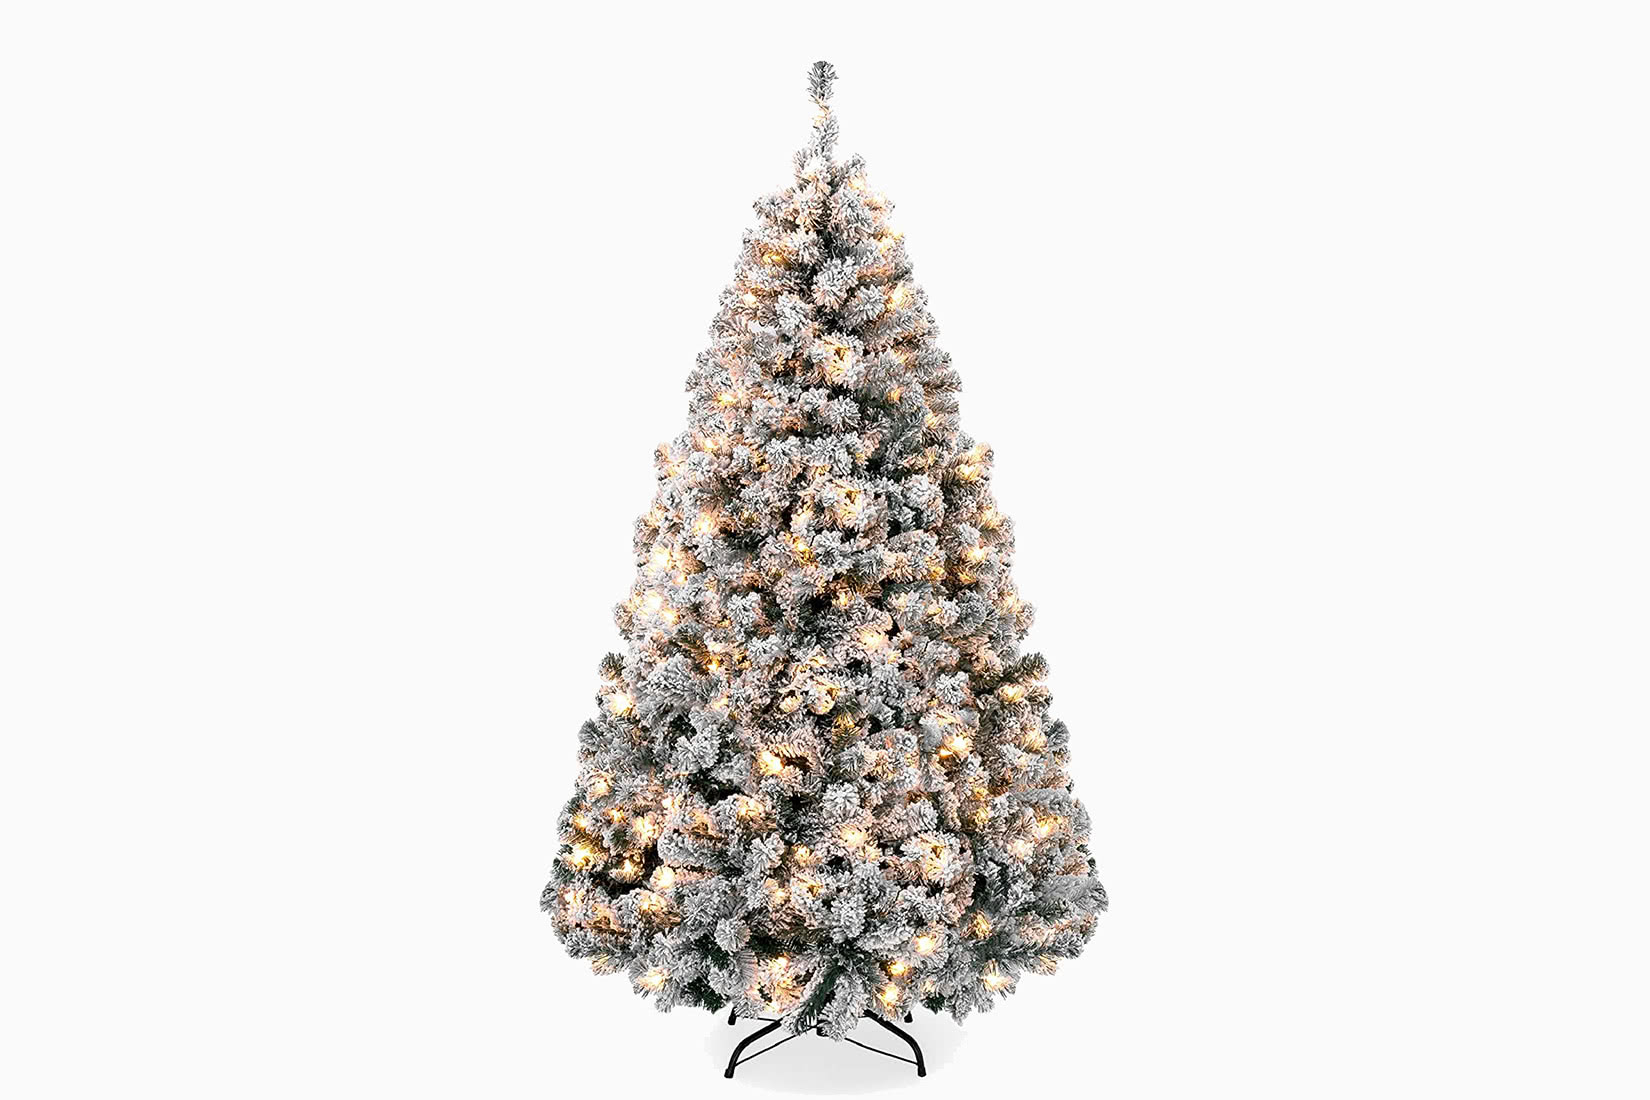 best artificial Christmas tree large choice review - Luxe Digital